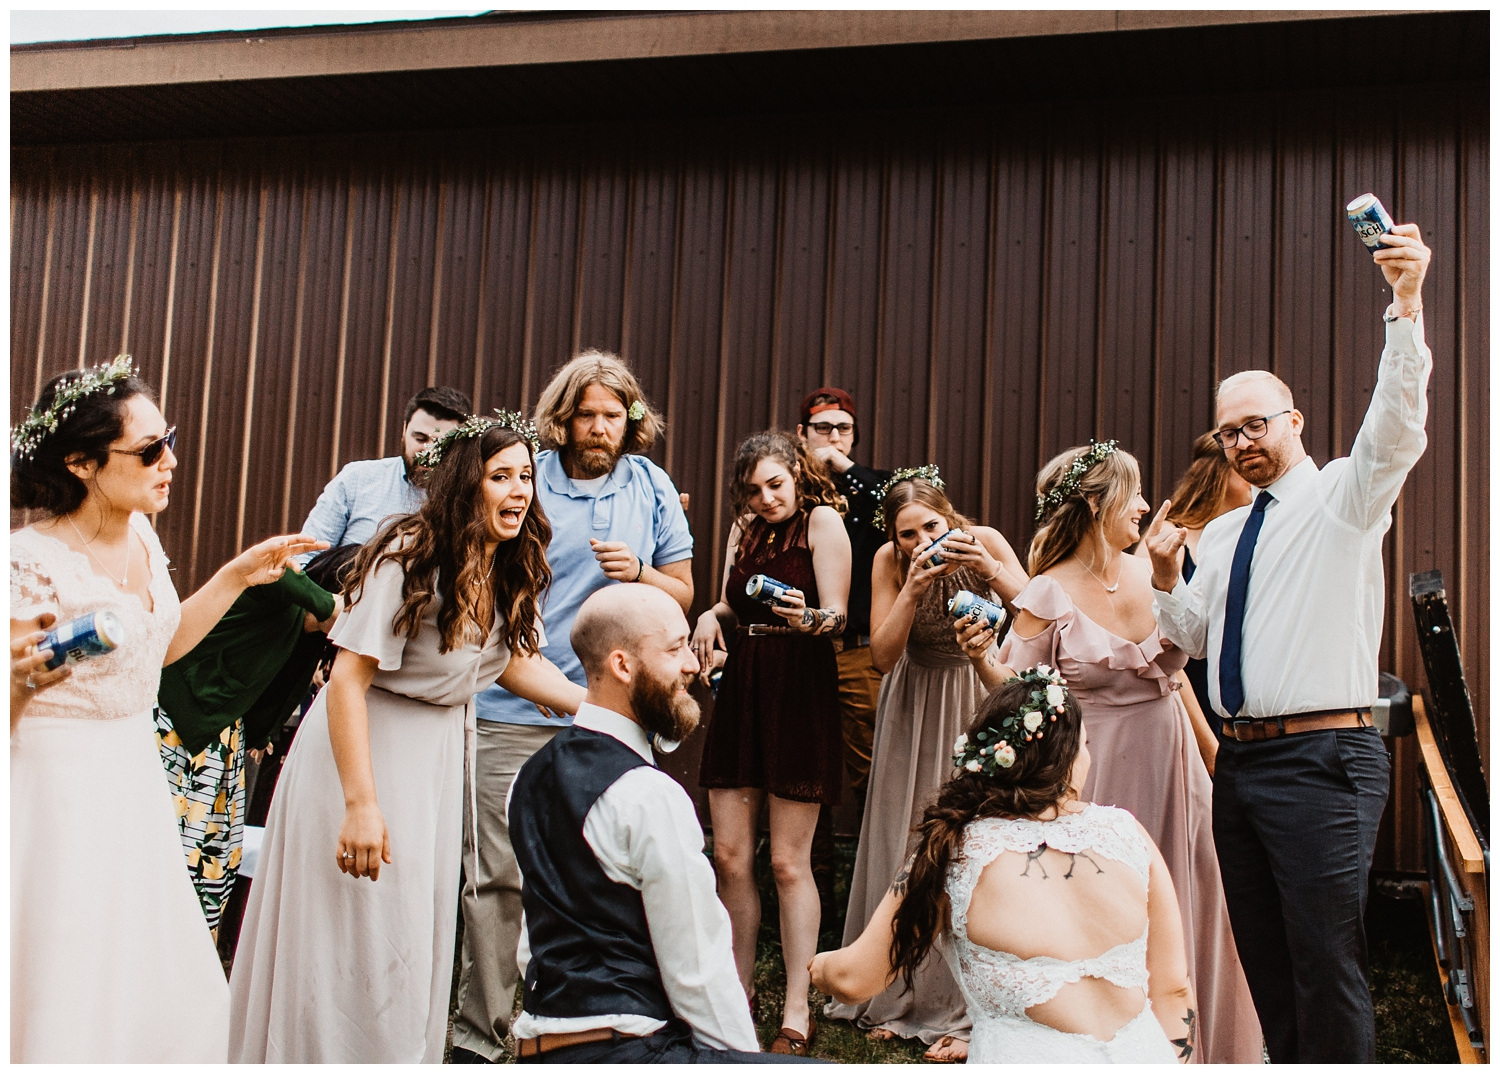 Northern_Michigan_Vineyard_Wedding_Nashville_Wedding_Photographer0109.jpg